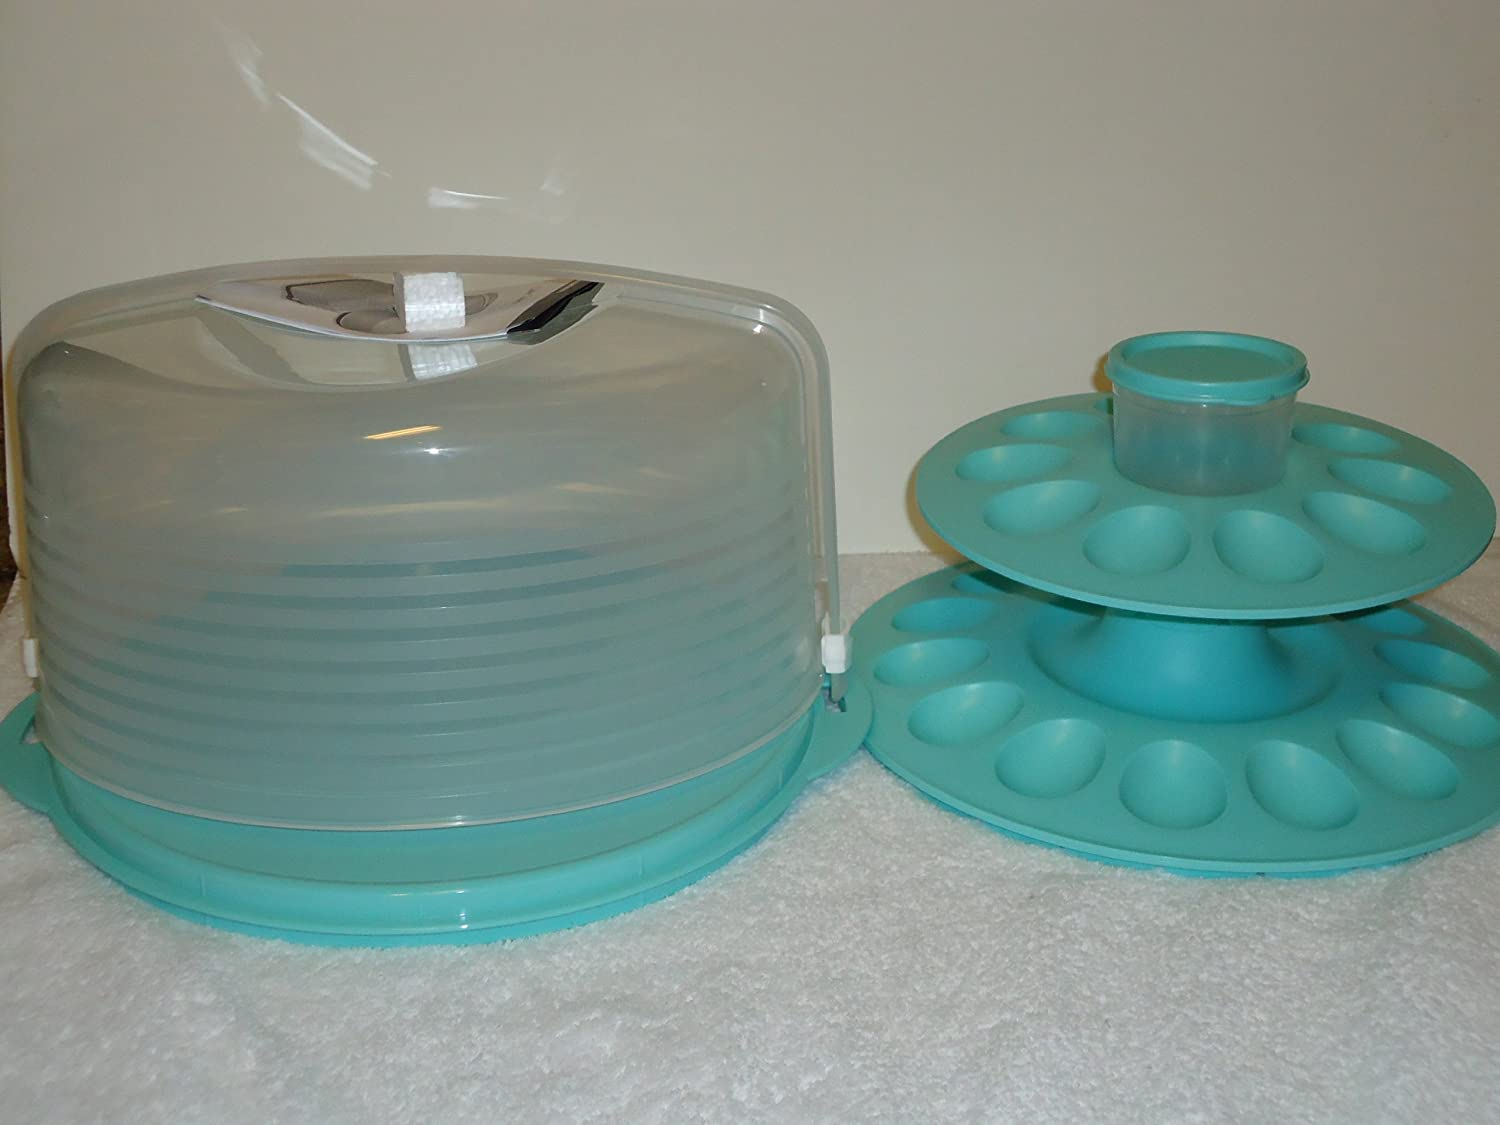 Buy Tupperware Round Cake Taker with the Egg - Ceptional Server Set ...